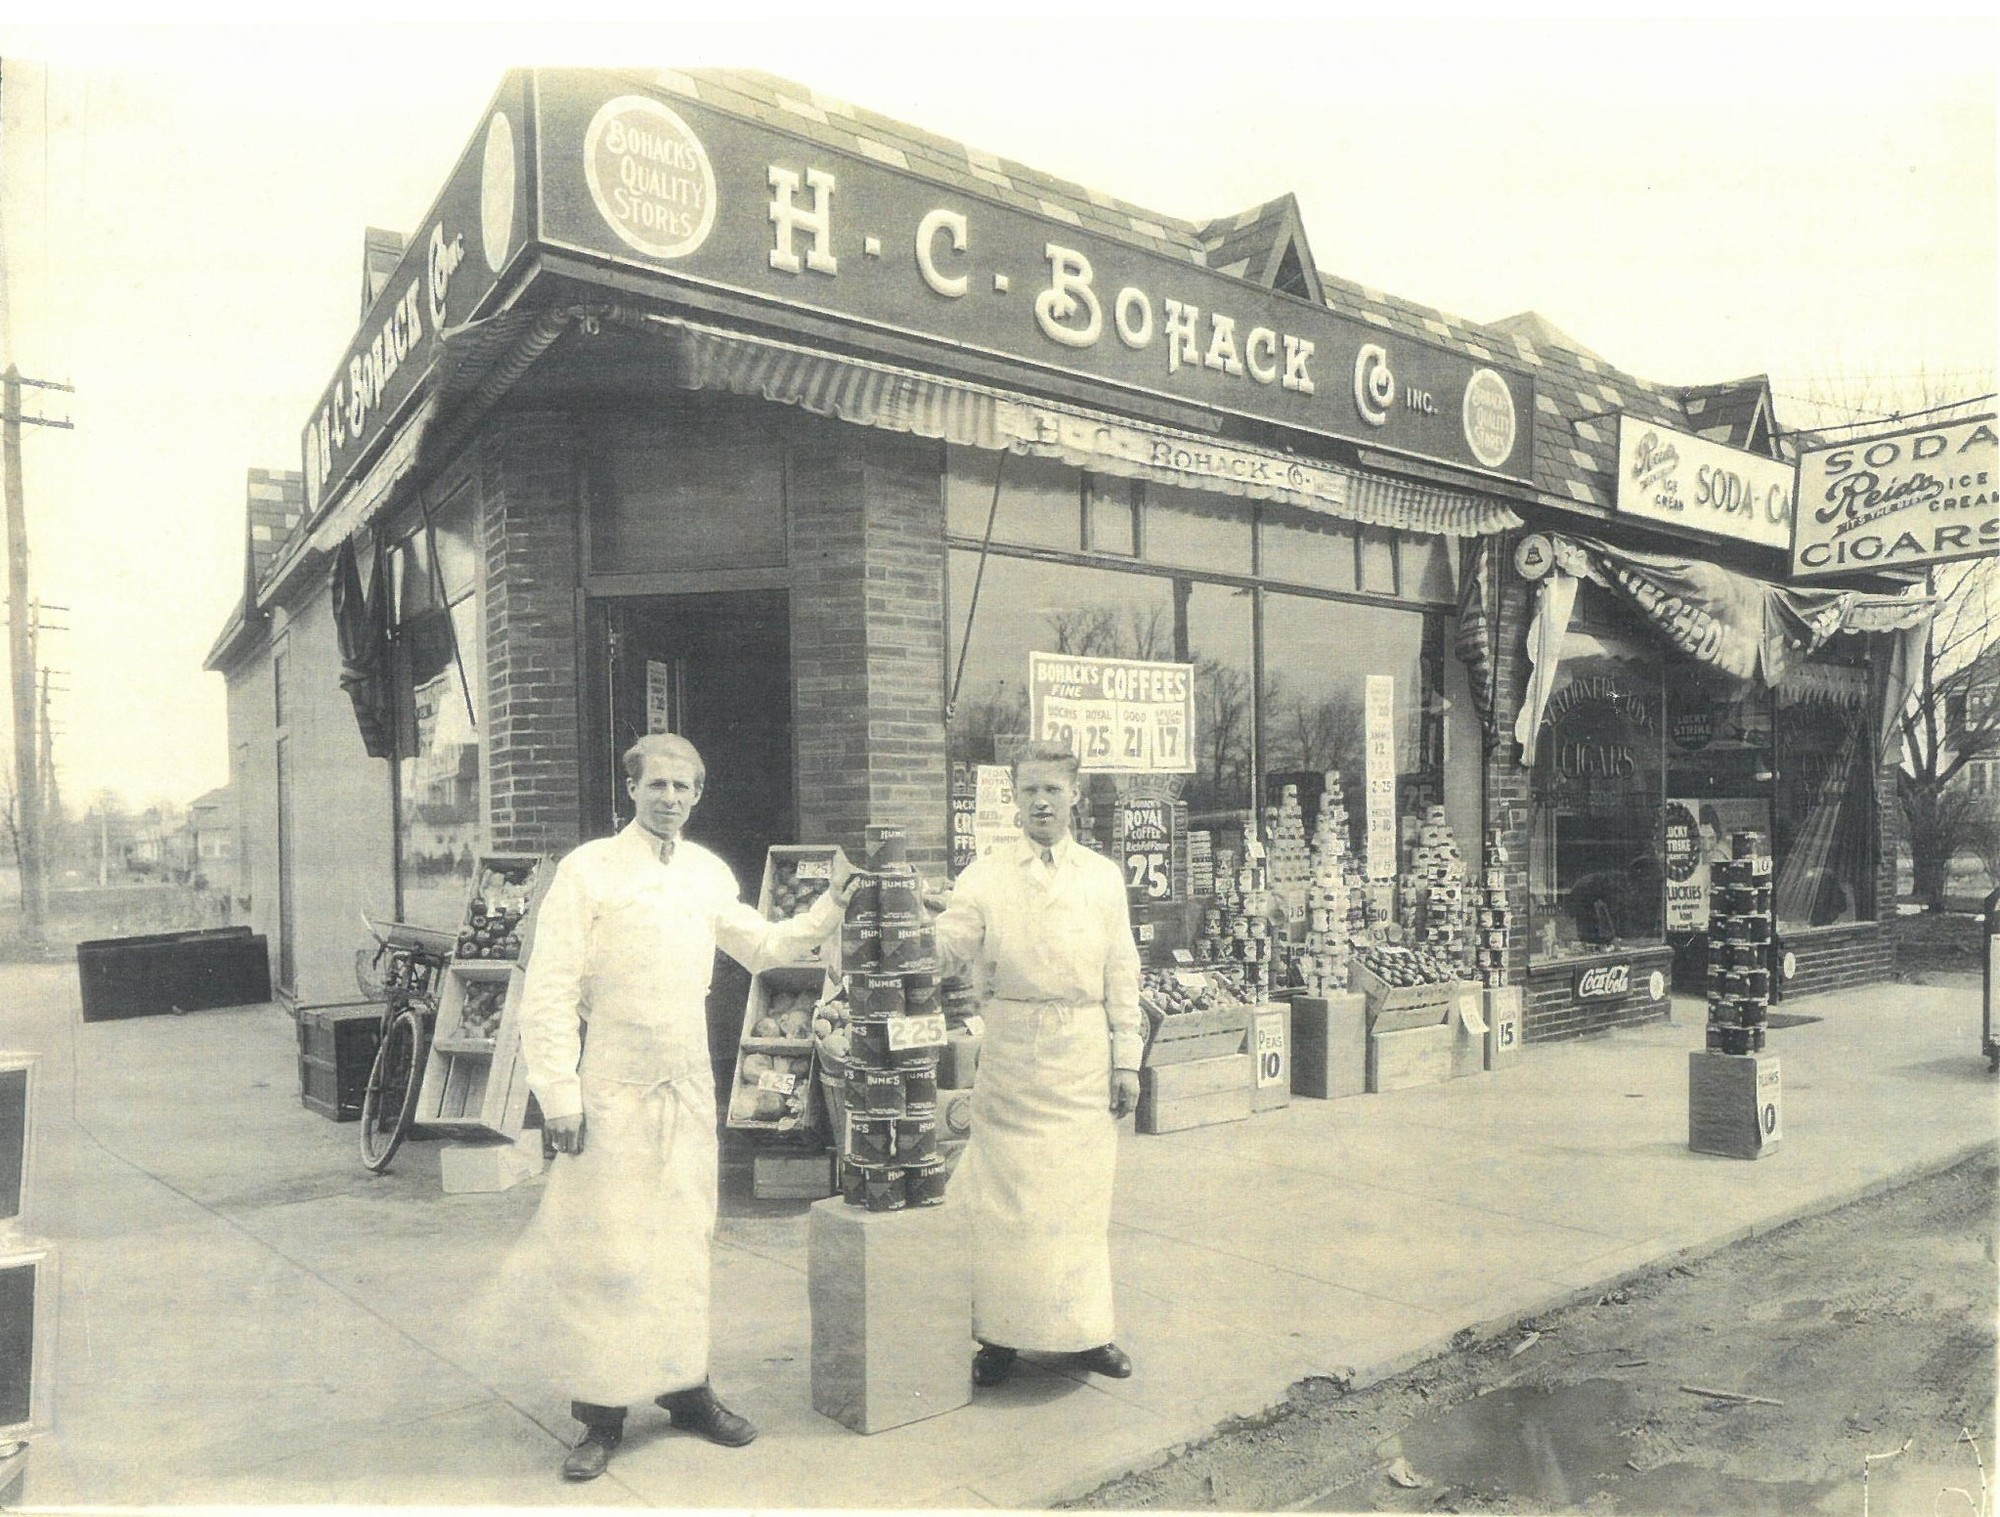 Through StoryCorps, Bellmorites are sharing their memories of Bellmore, including the shops on Bedford Avenue like Bohack�s, pictured above in 1939.